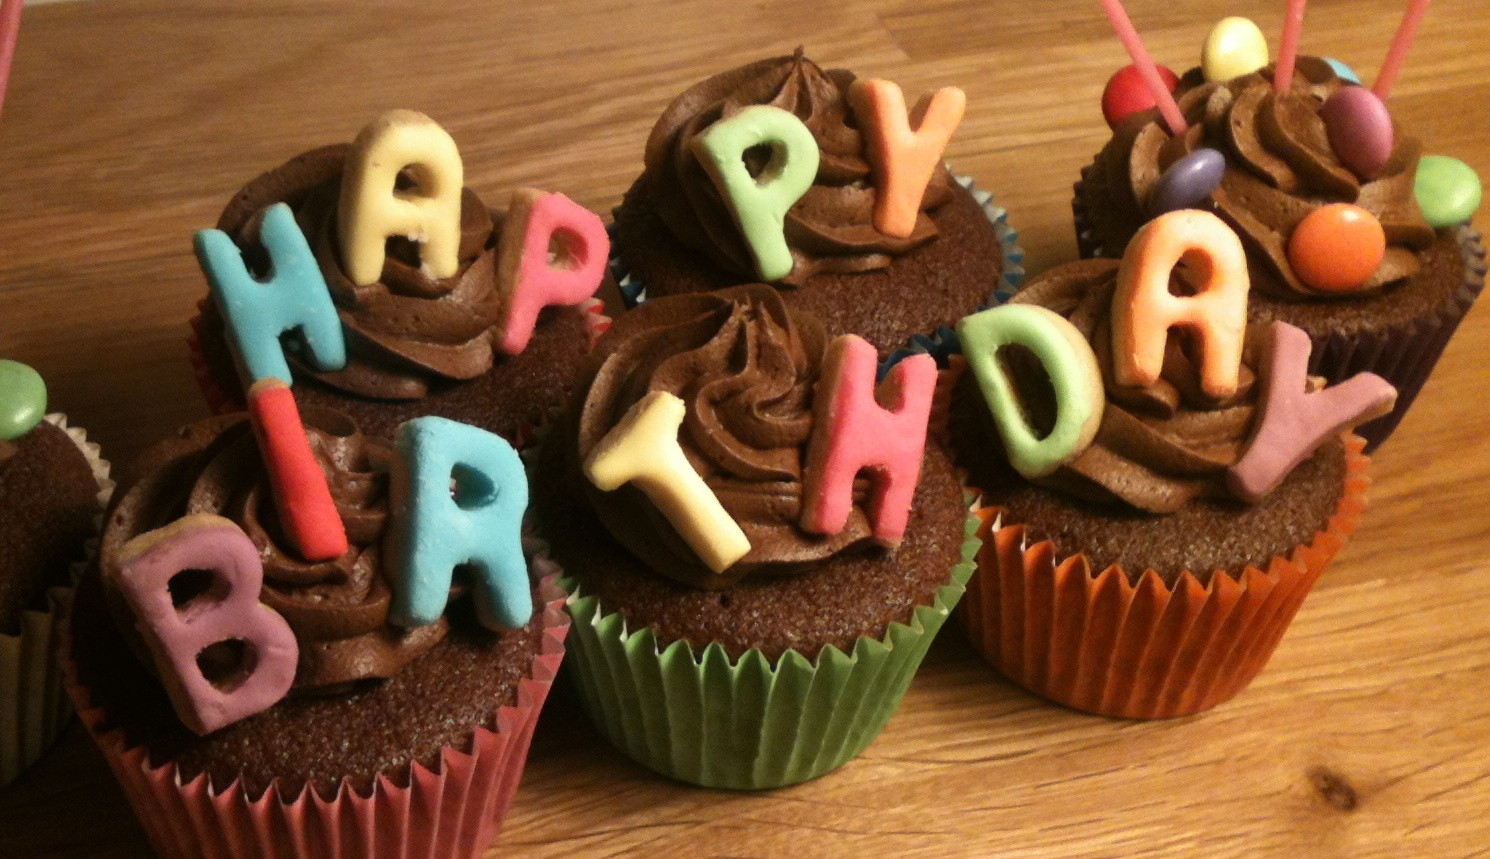 Is 'Happy Birthday' Still Under Copyright? » happy birthday ...